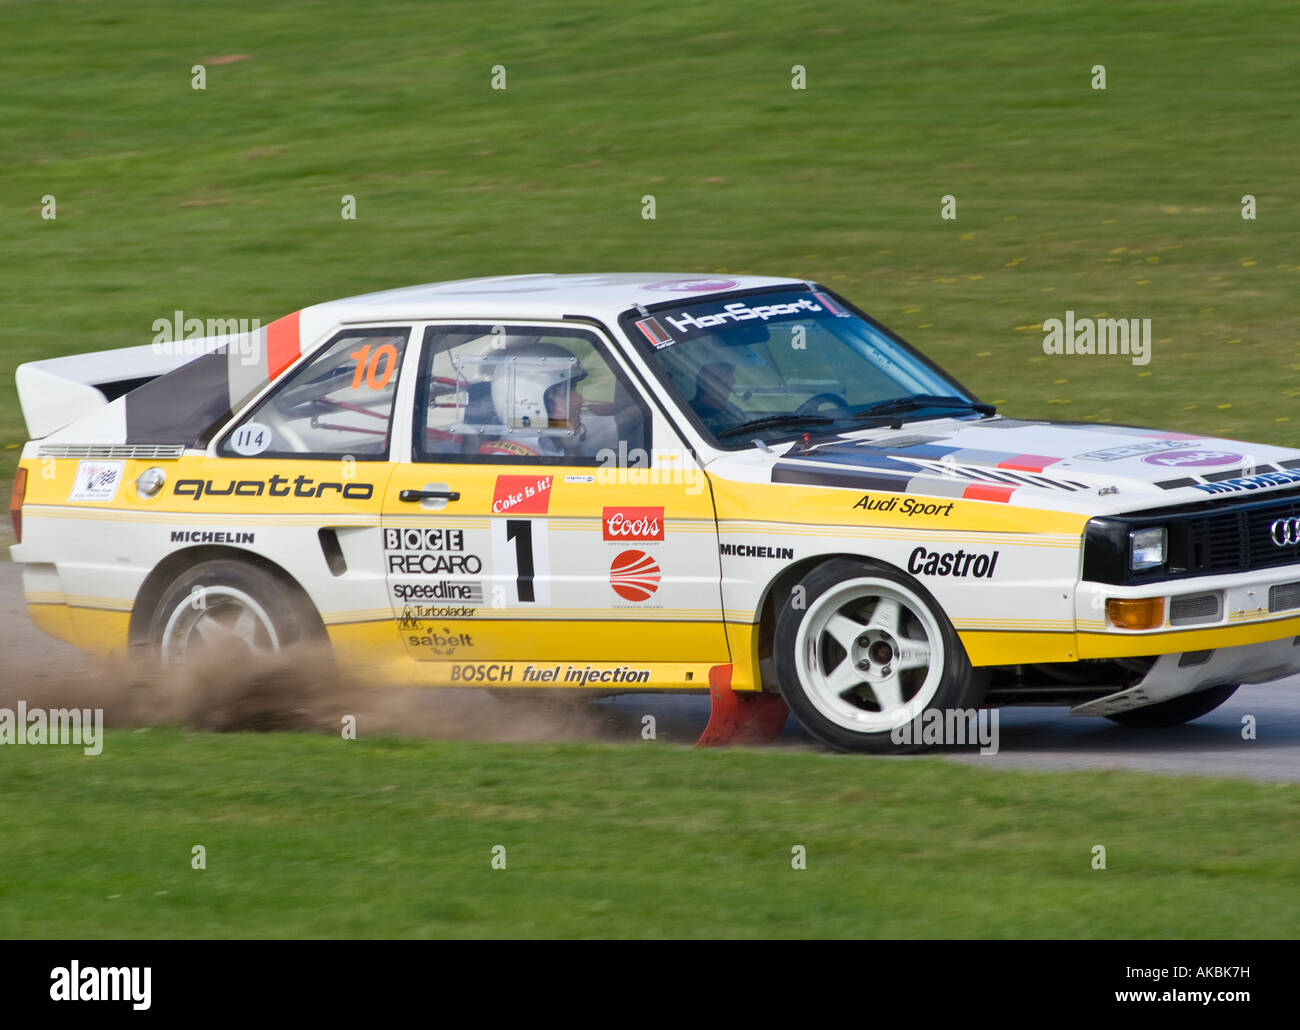 group b rally car stock photos group b rally car stock images alamy. Black Bedroom Furniture Sets. Home Design Ideas